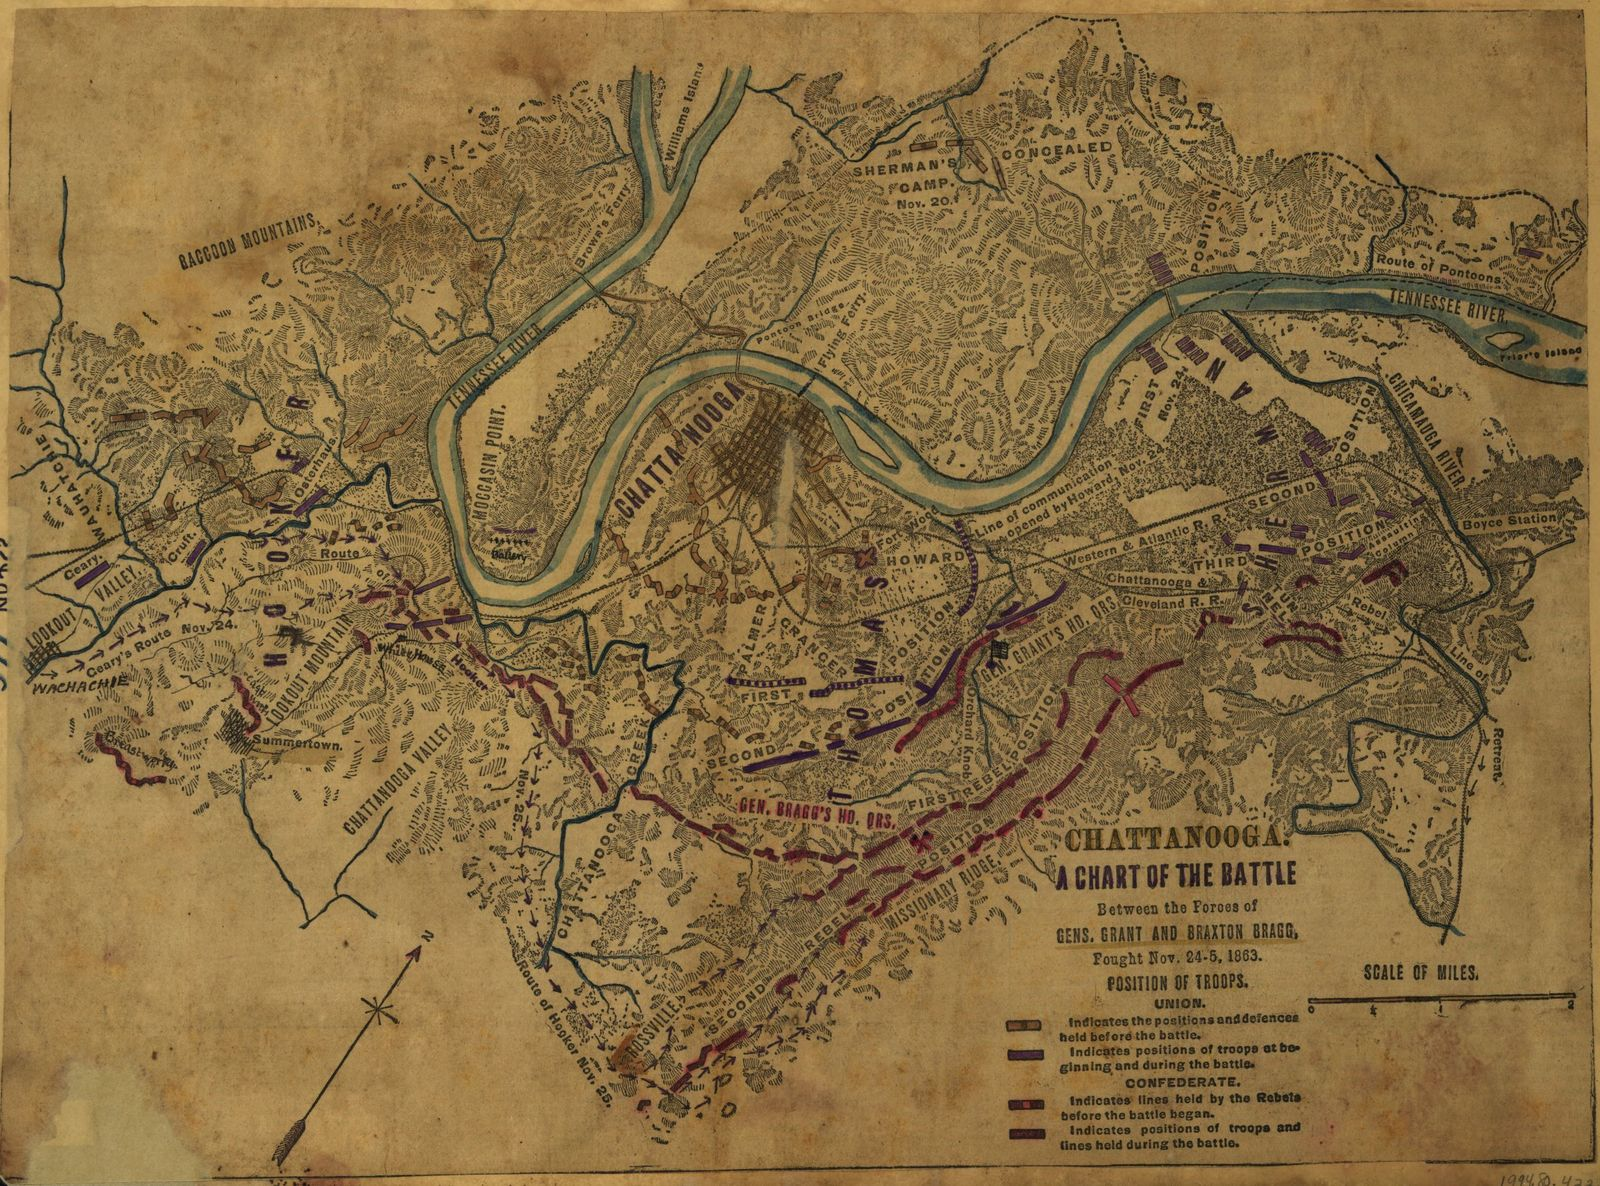 Chattanooga A chart of the battle between the forces of Gens. Grant and Braxton Bragg, fought Nov. 24-5 1863.